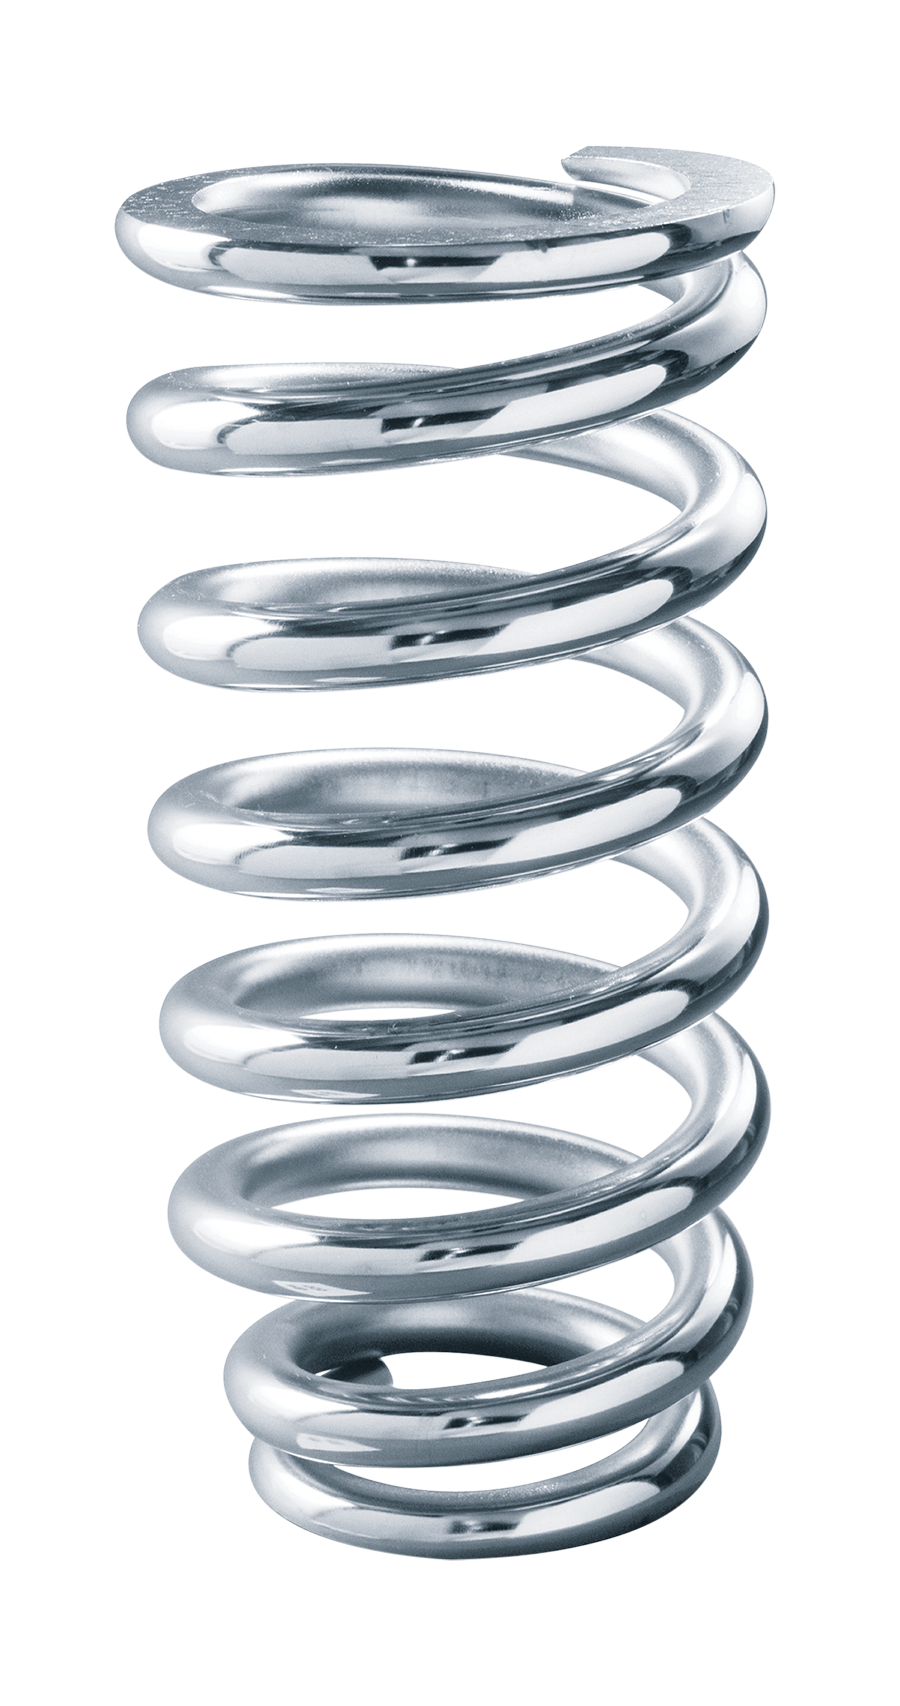 Spring coil png. Springs for mustang ii